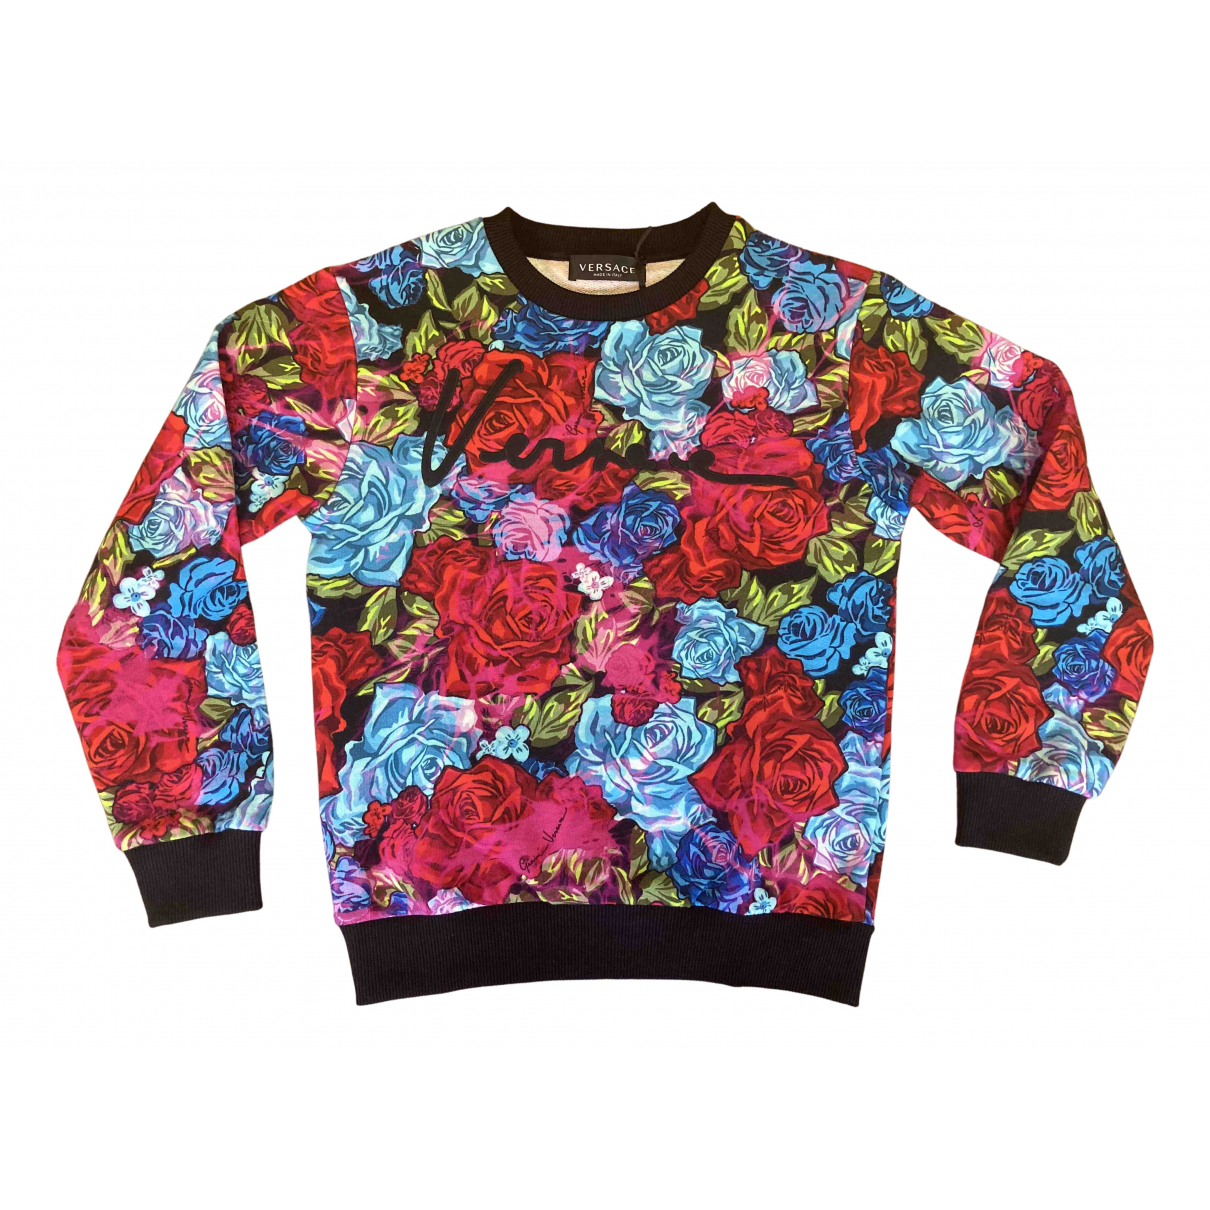 Versace N Multicolour Cotton Knitwear for Kids 10 years - up to 142cm FR